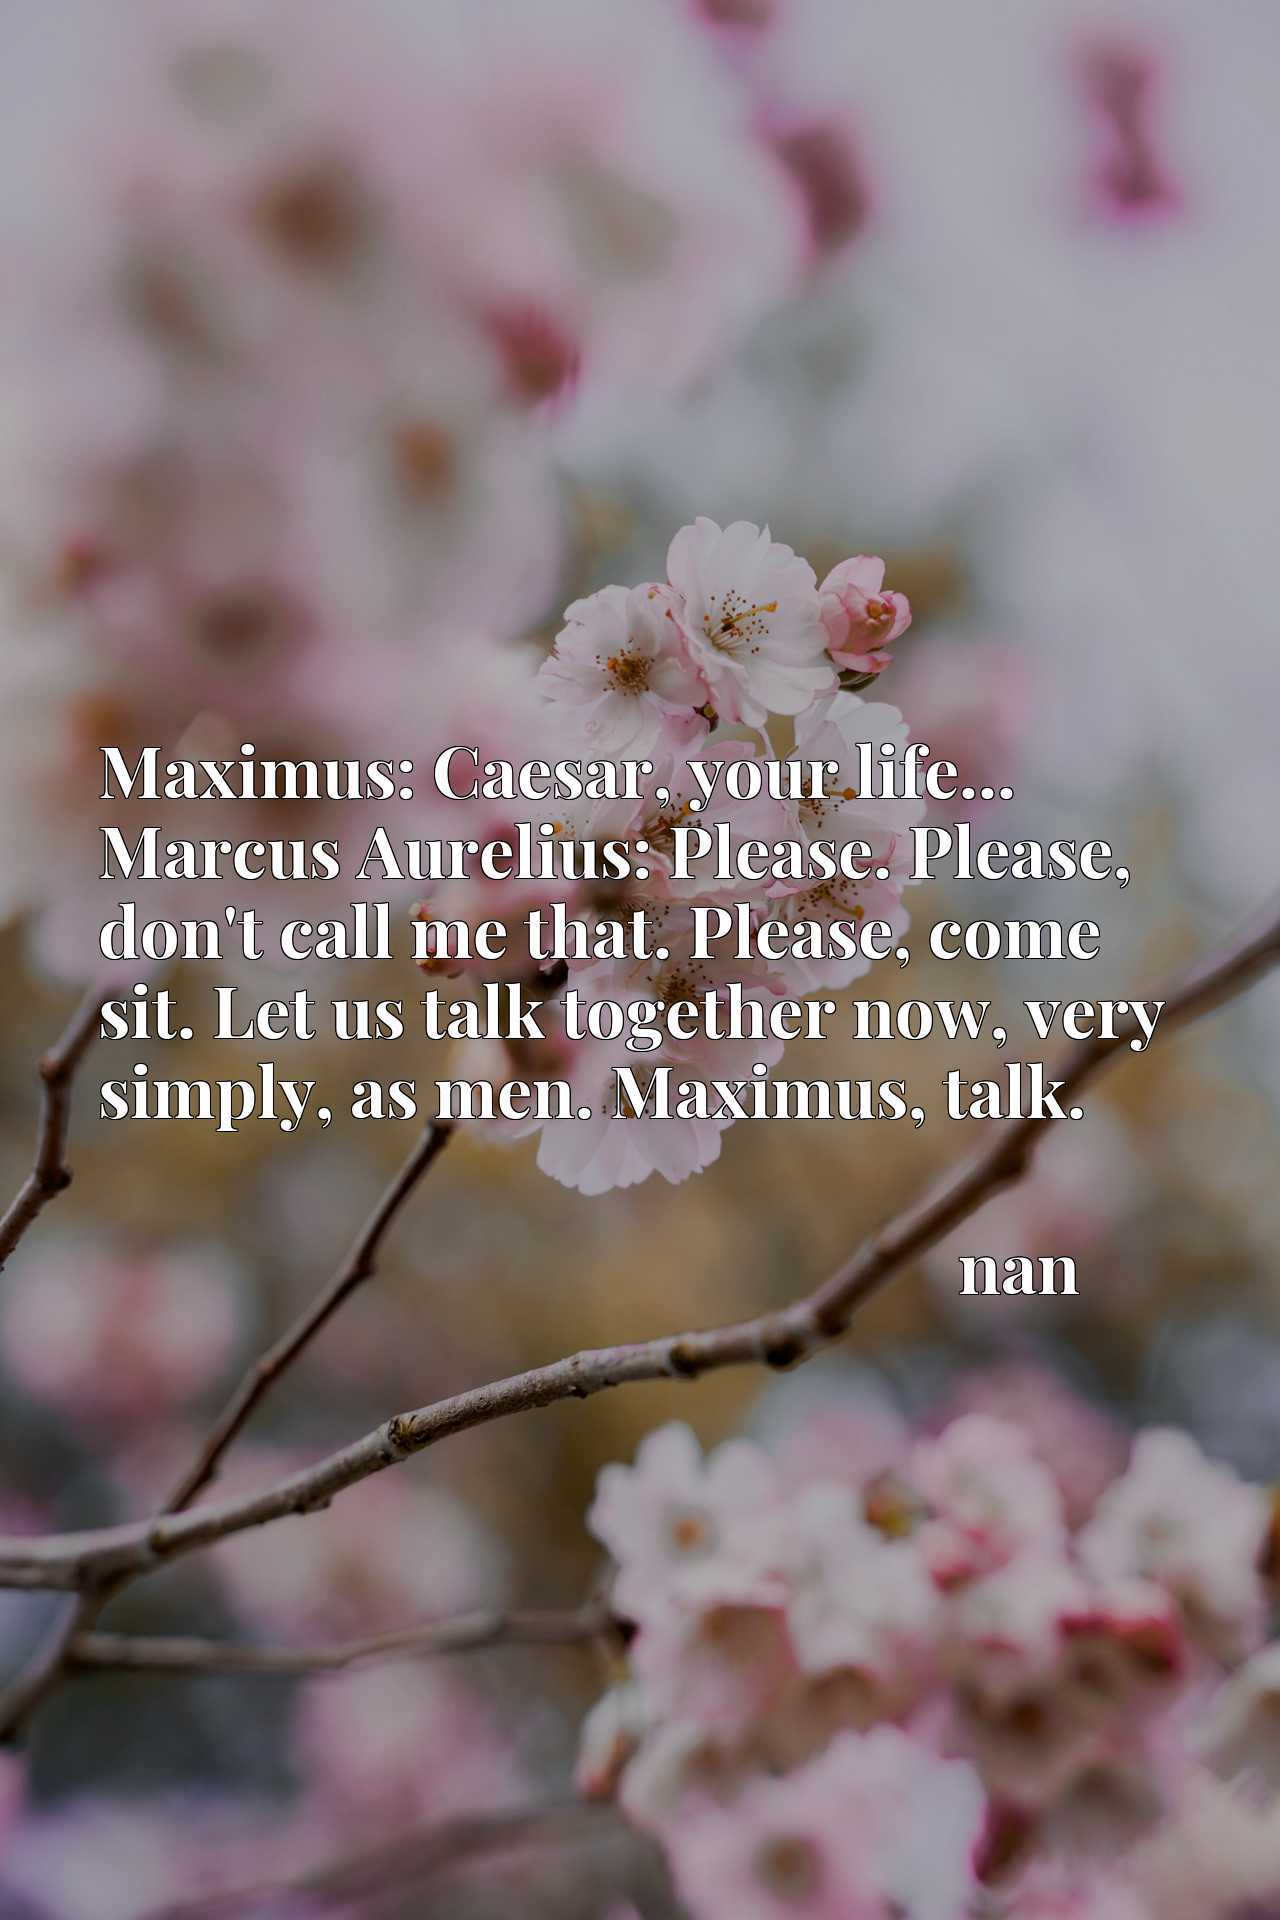 Maximus: Caesar, your life... Marcus Aurelius: Please. Please, don't call me that. Please, come sit. Let us talk together now, very simply, as men. Maximus, talk.